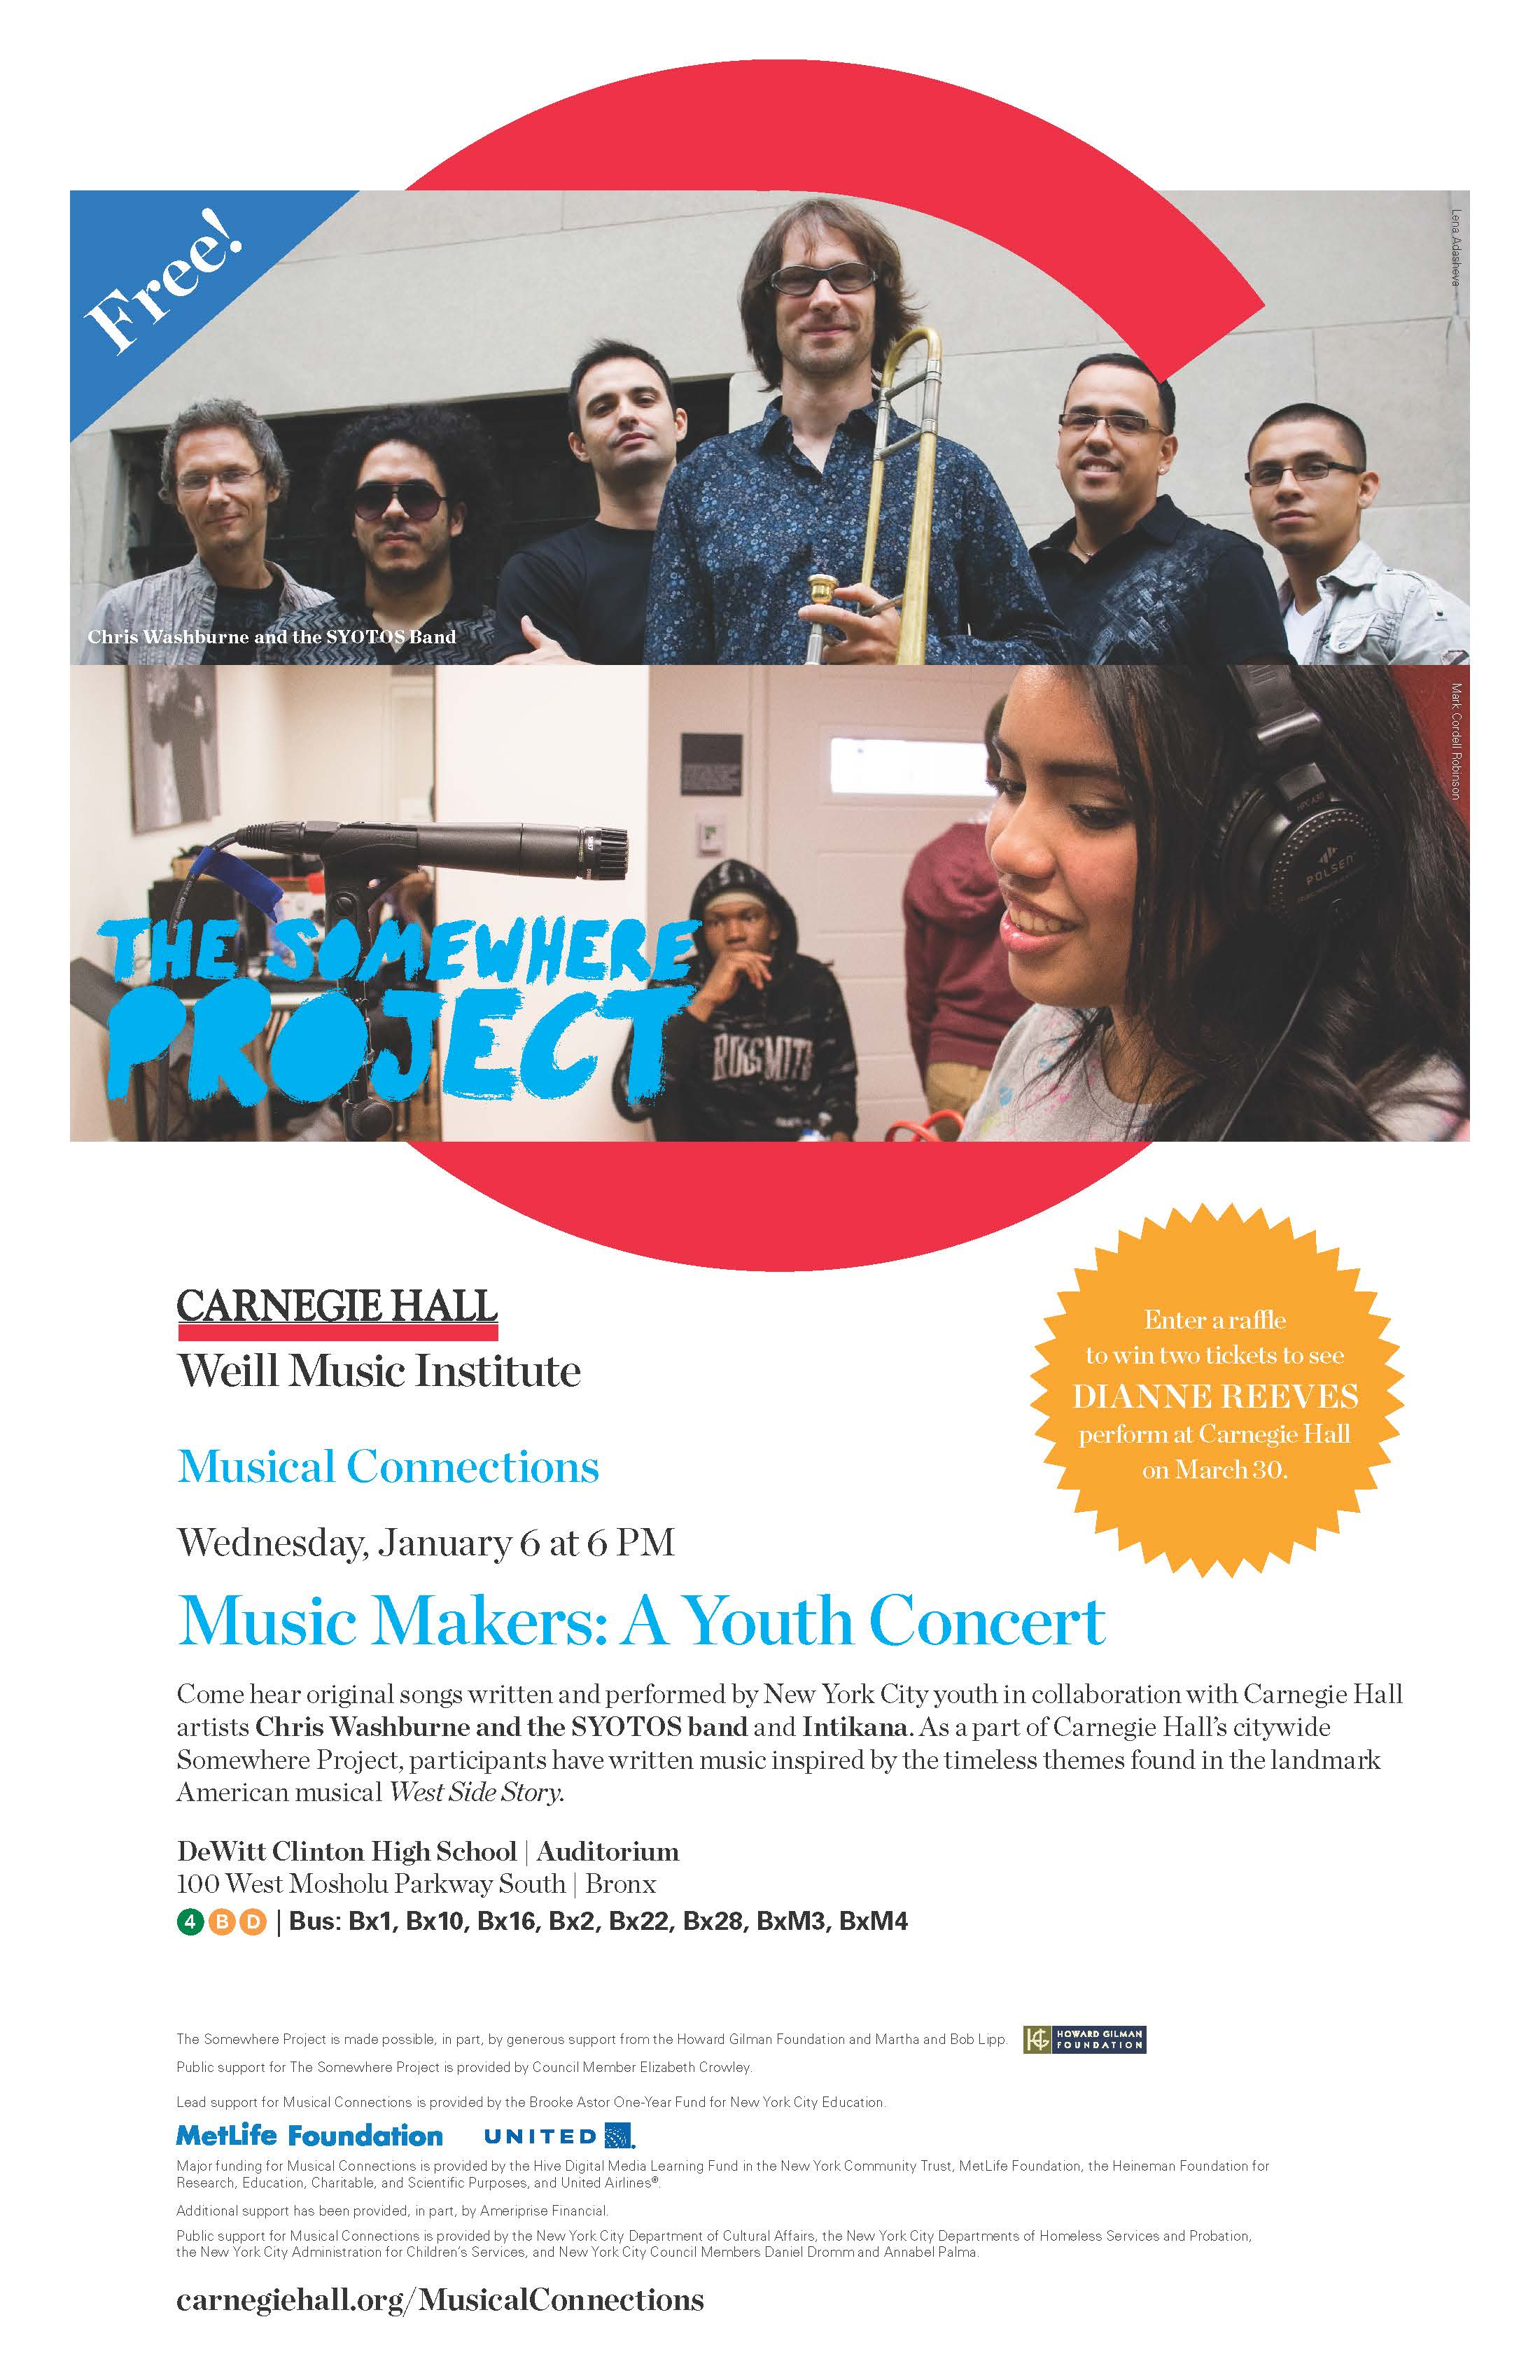 Music Makers - A Youth Concert